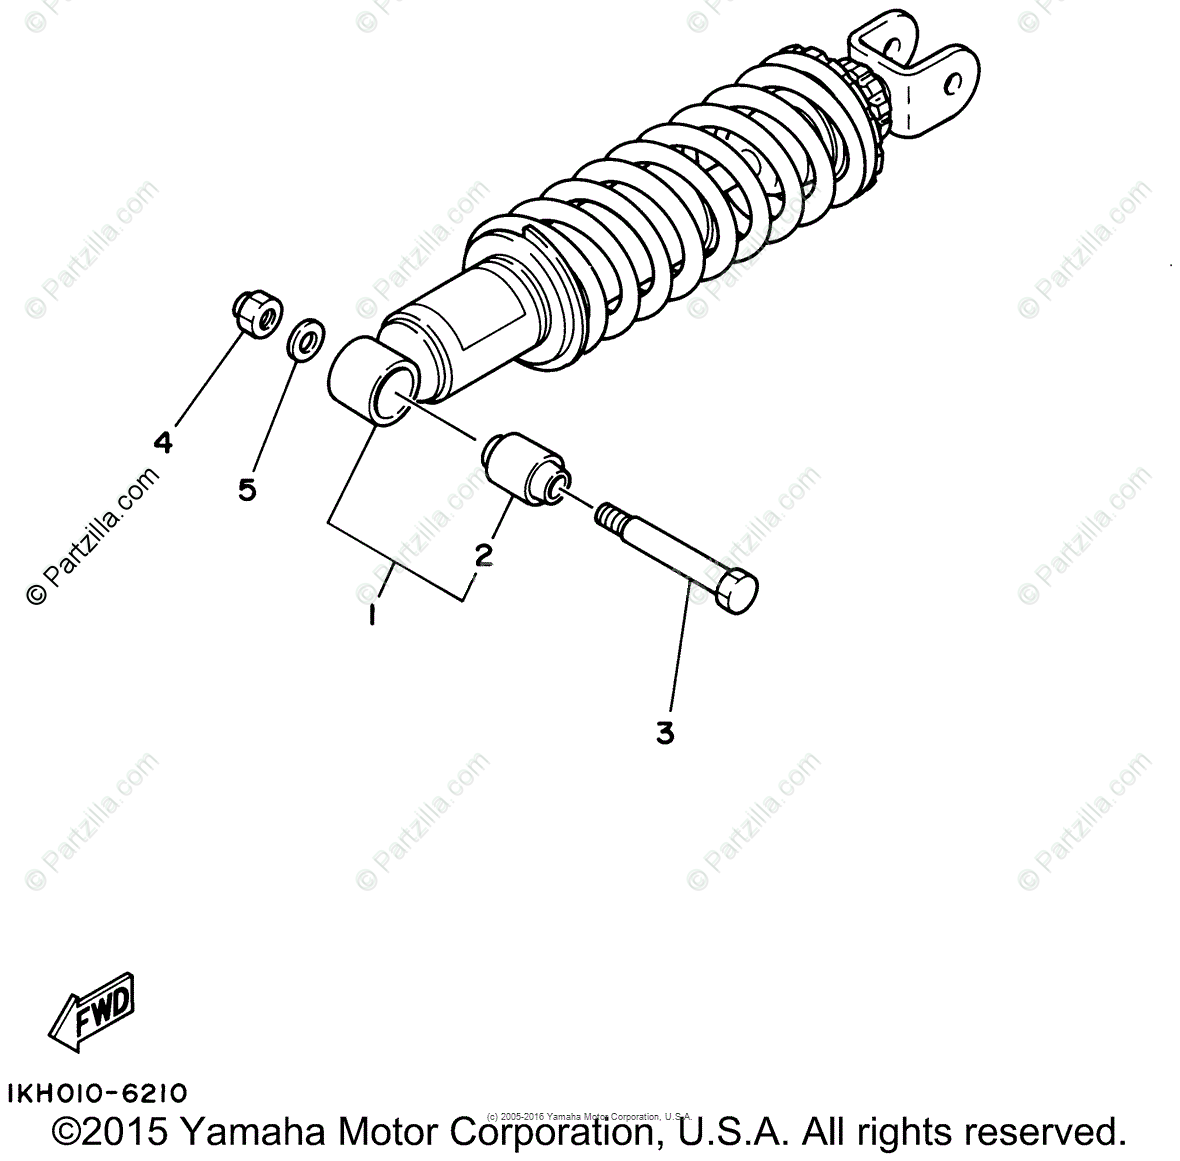 Yamaha Motorcycle 2001 OEM Parts Diagram for Rear